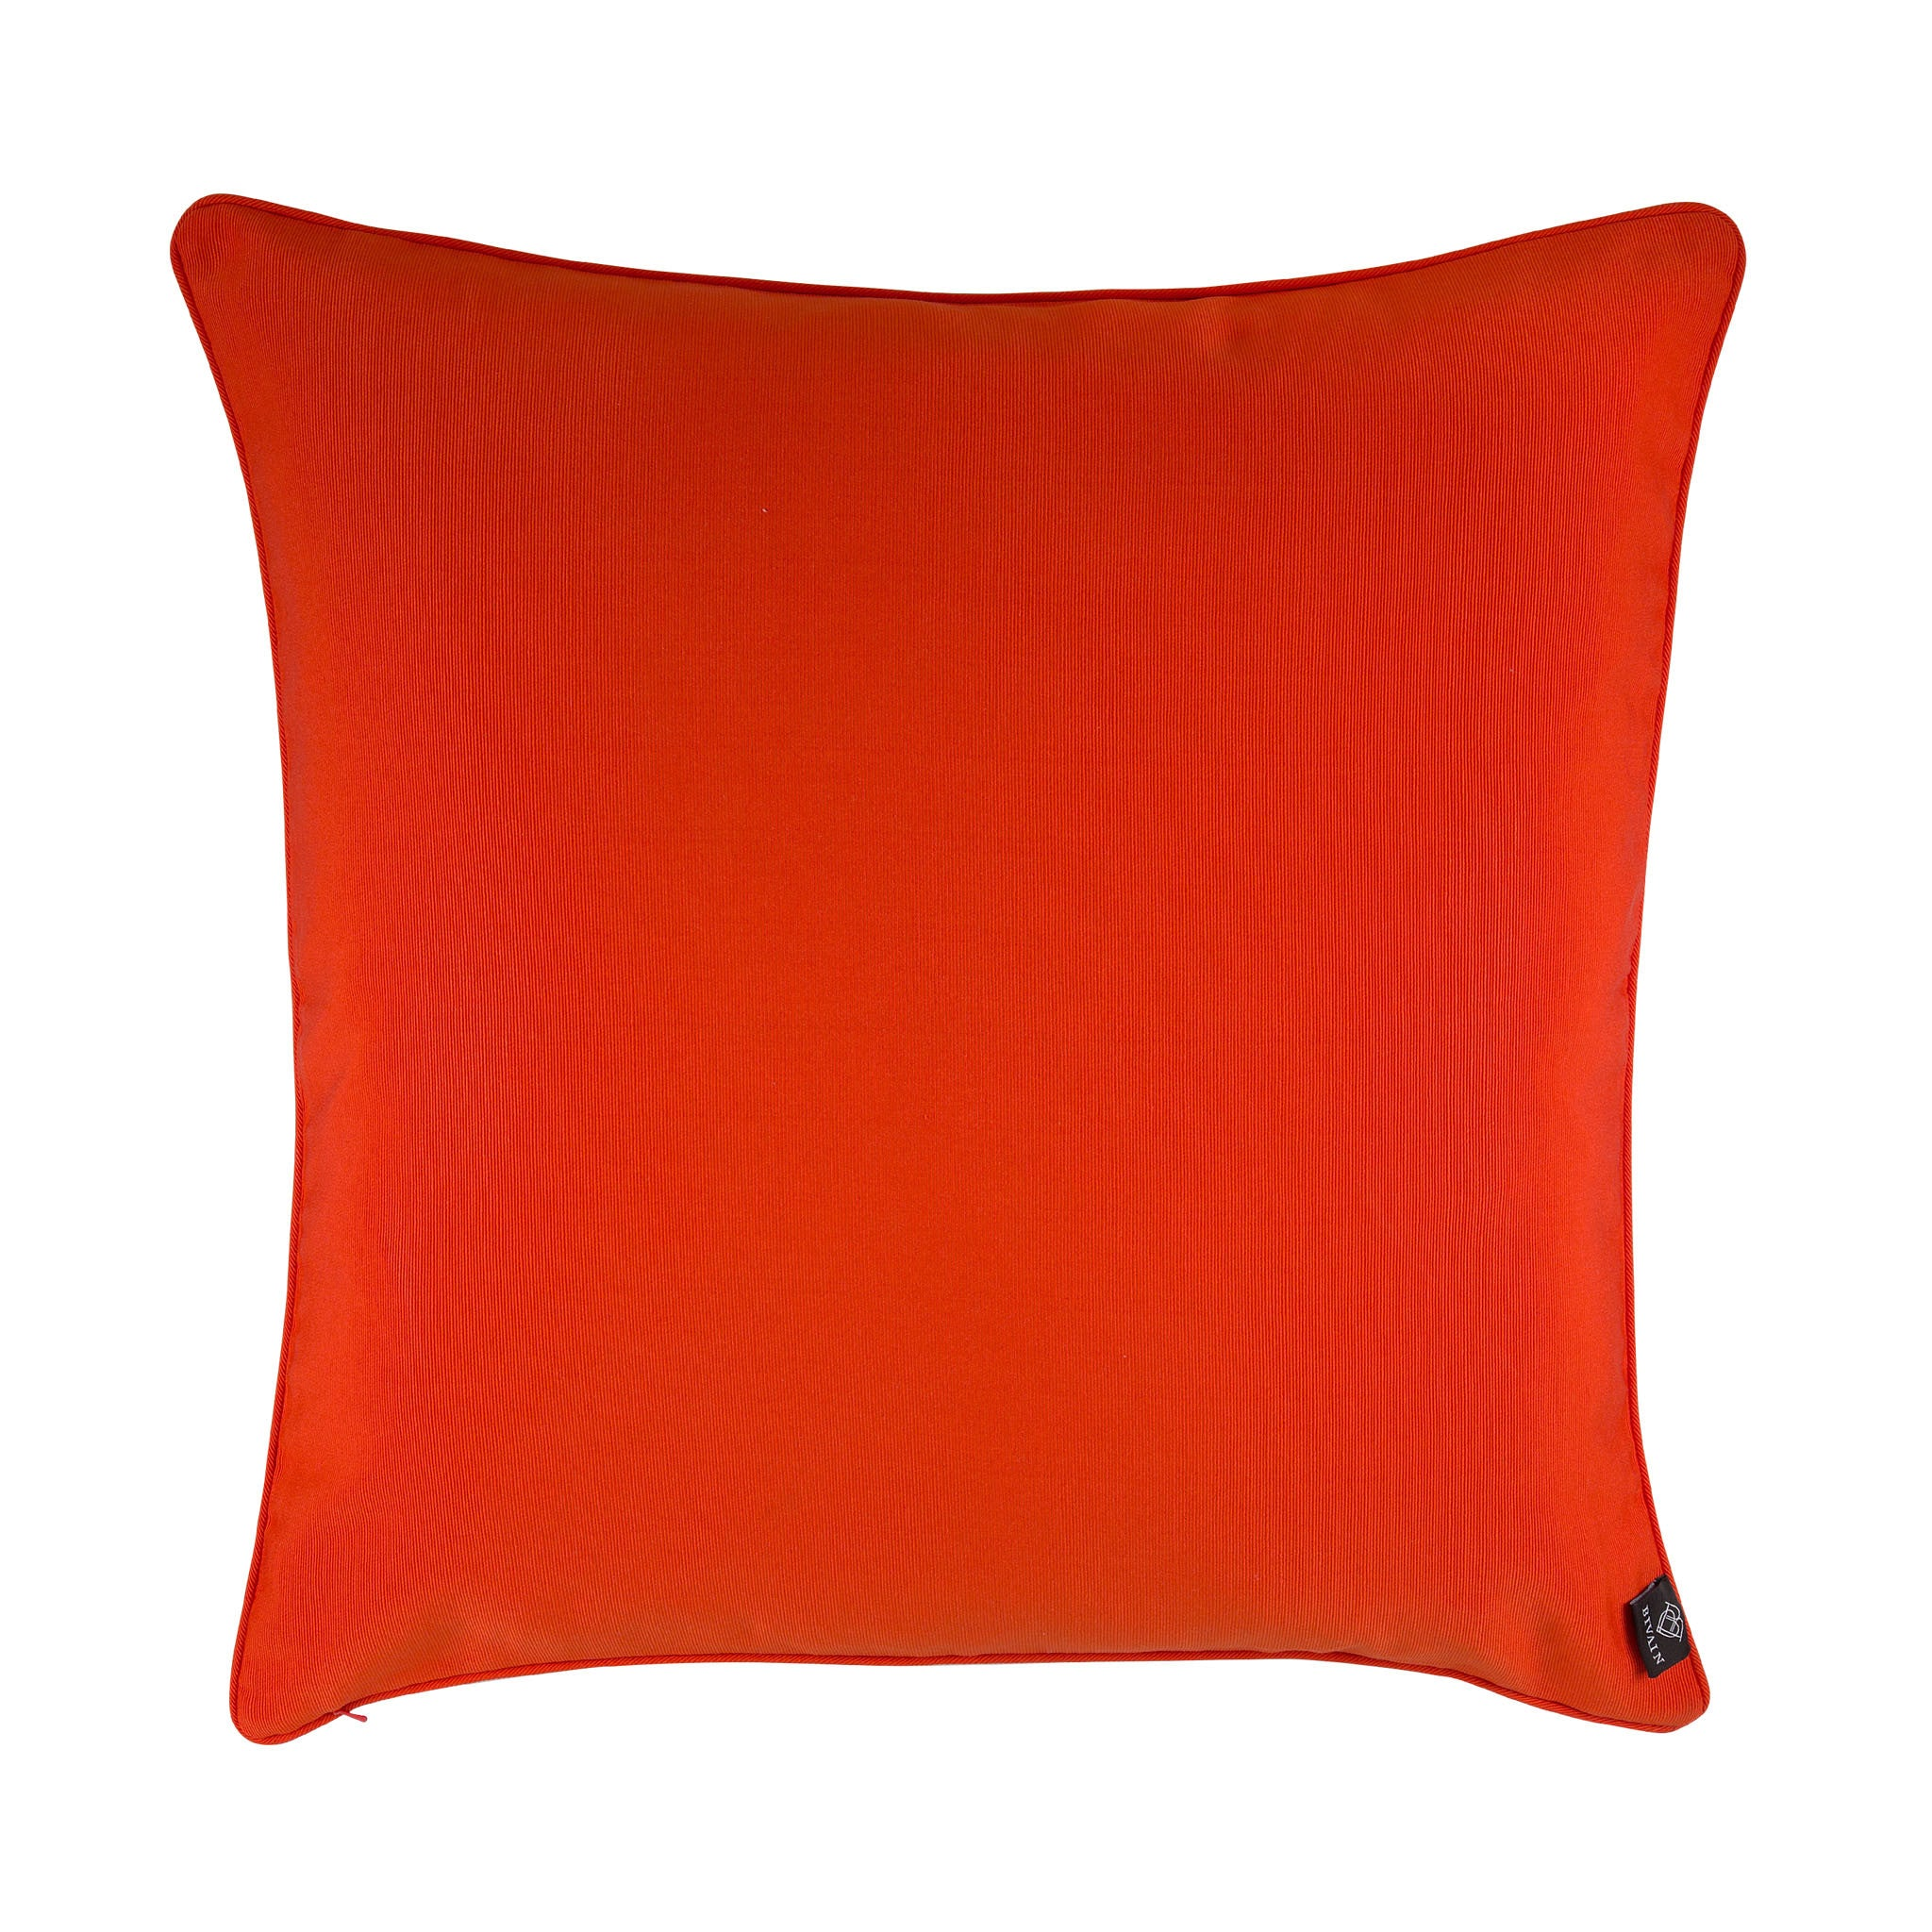 Silk twill orange & blue fish print cushion - Bivain - 3